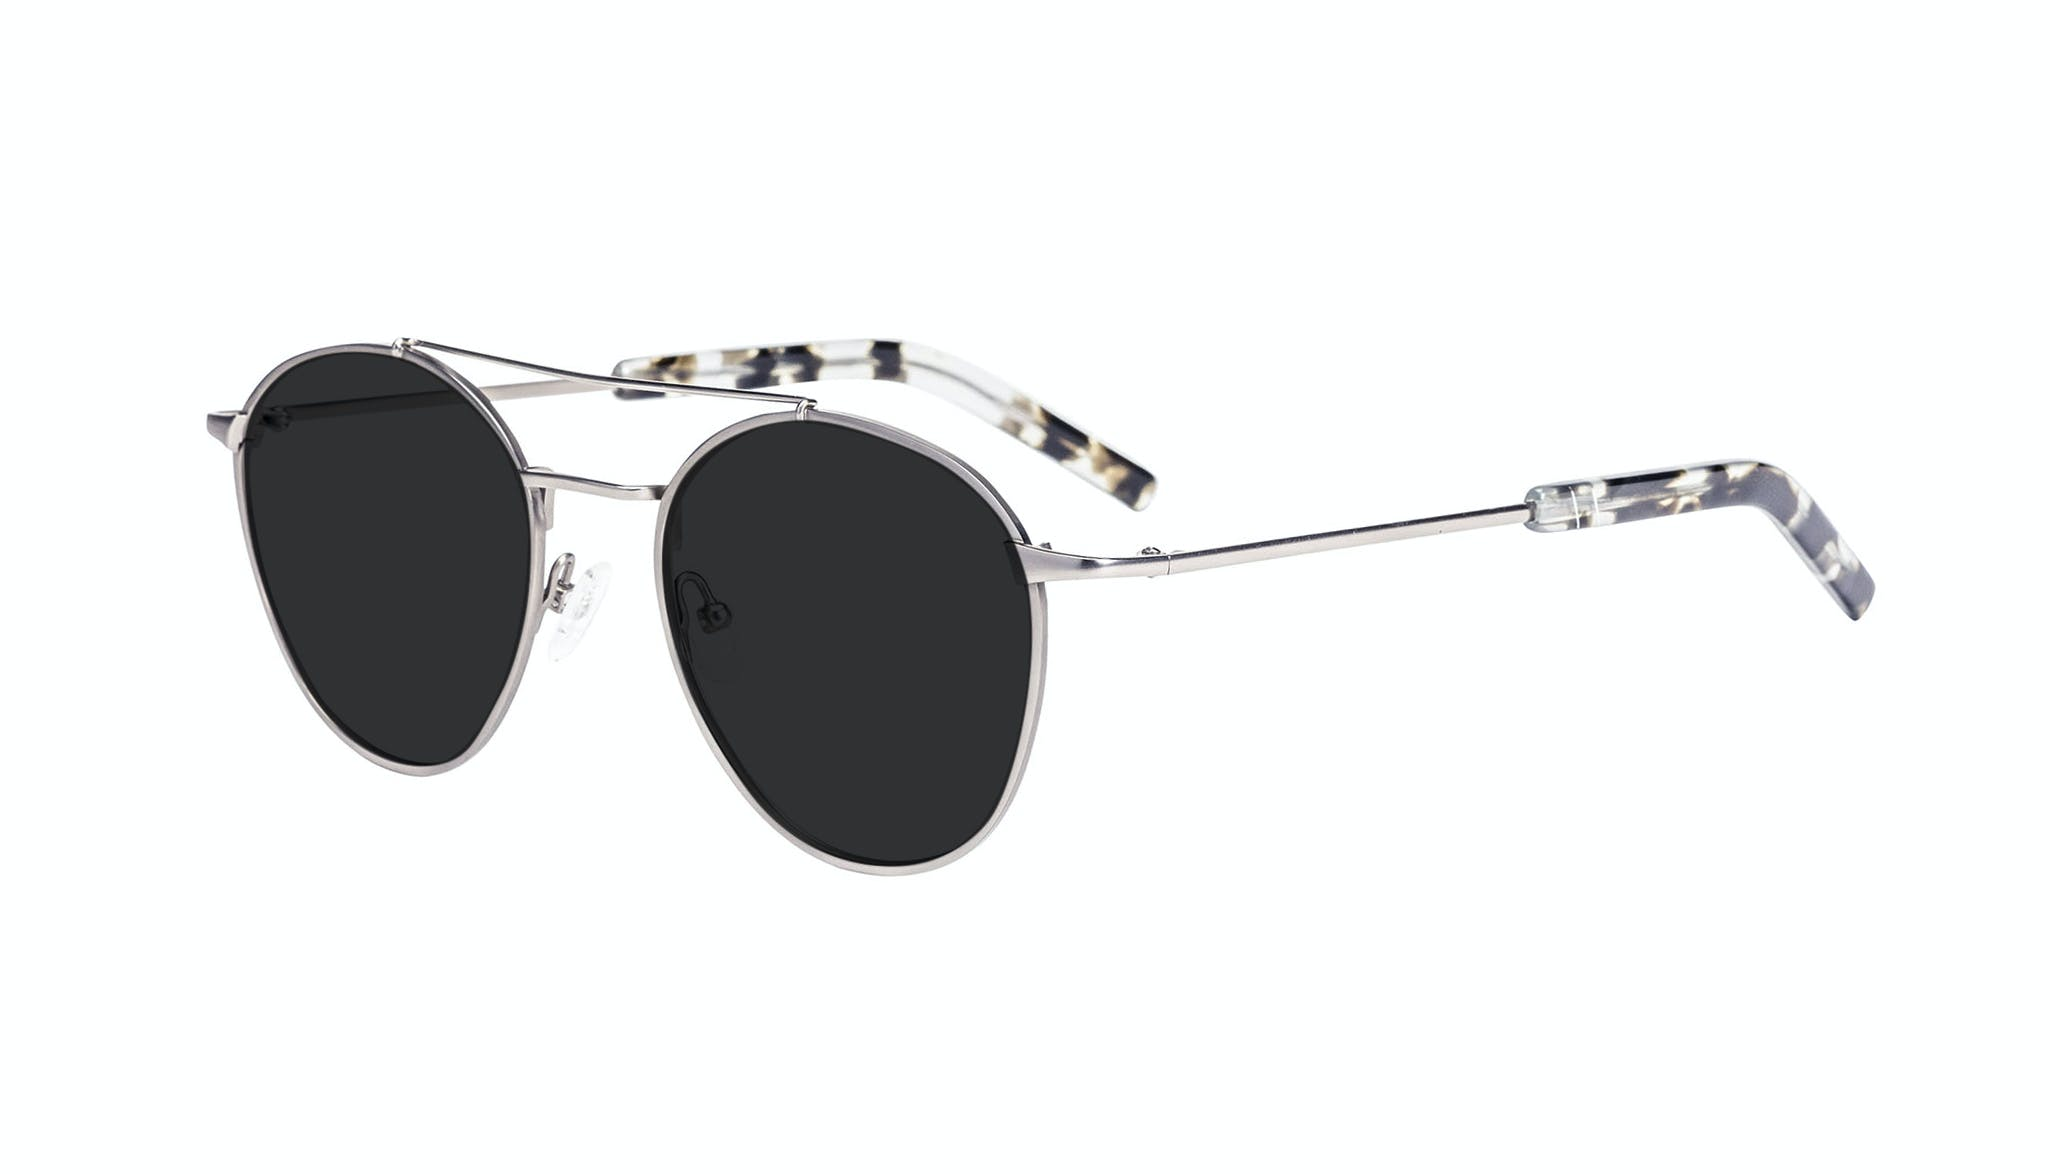 Affordable Fashion Glasses Aviator Sunglasses Men Gravity Silver Tilt